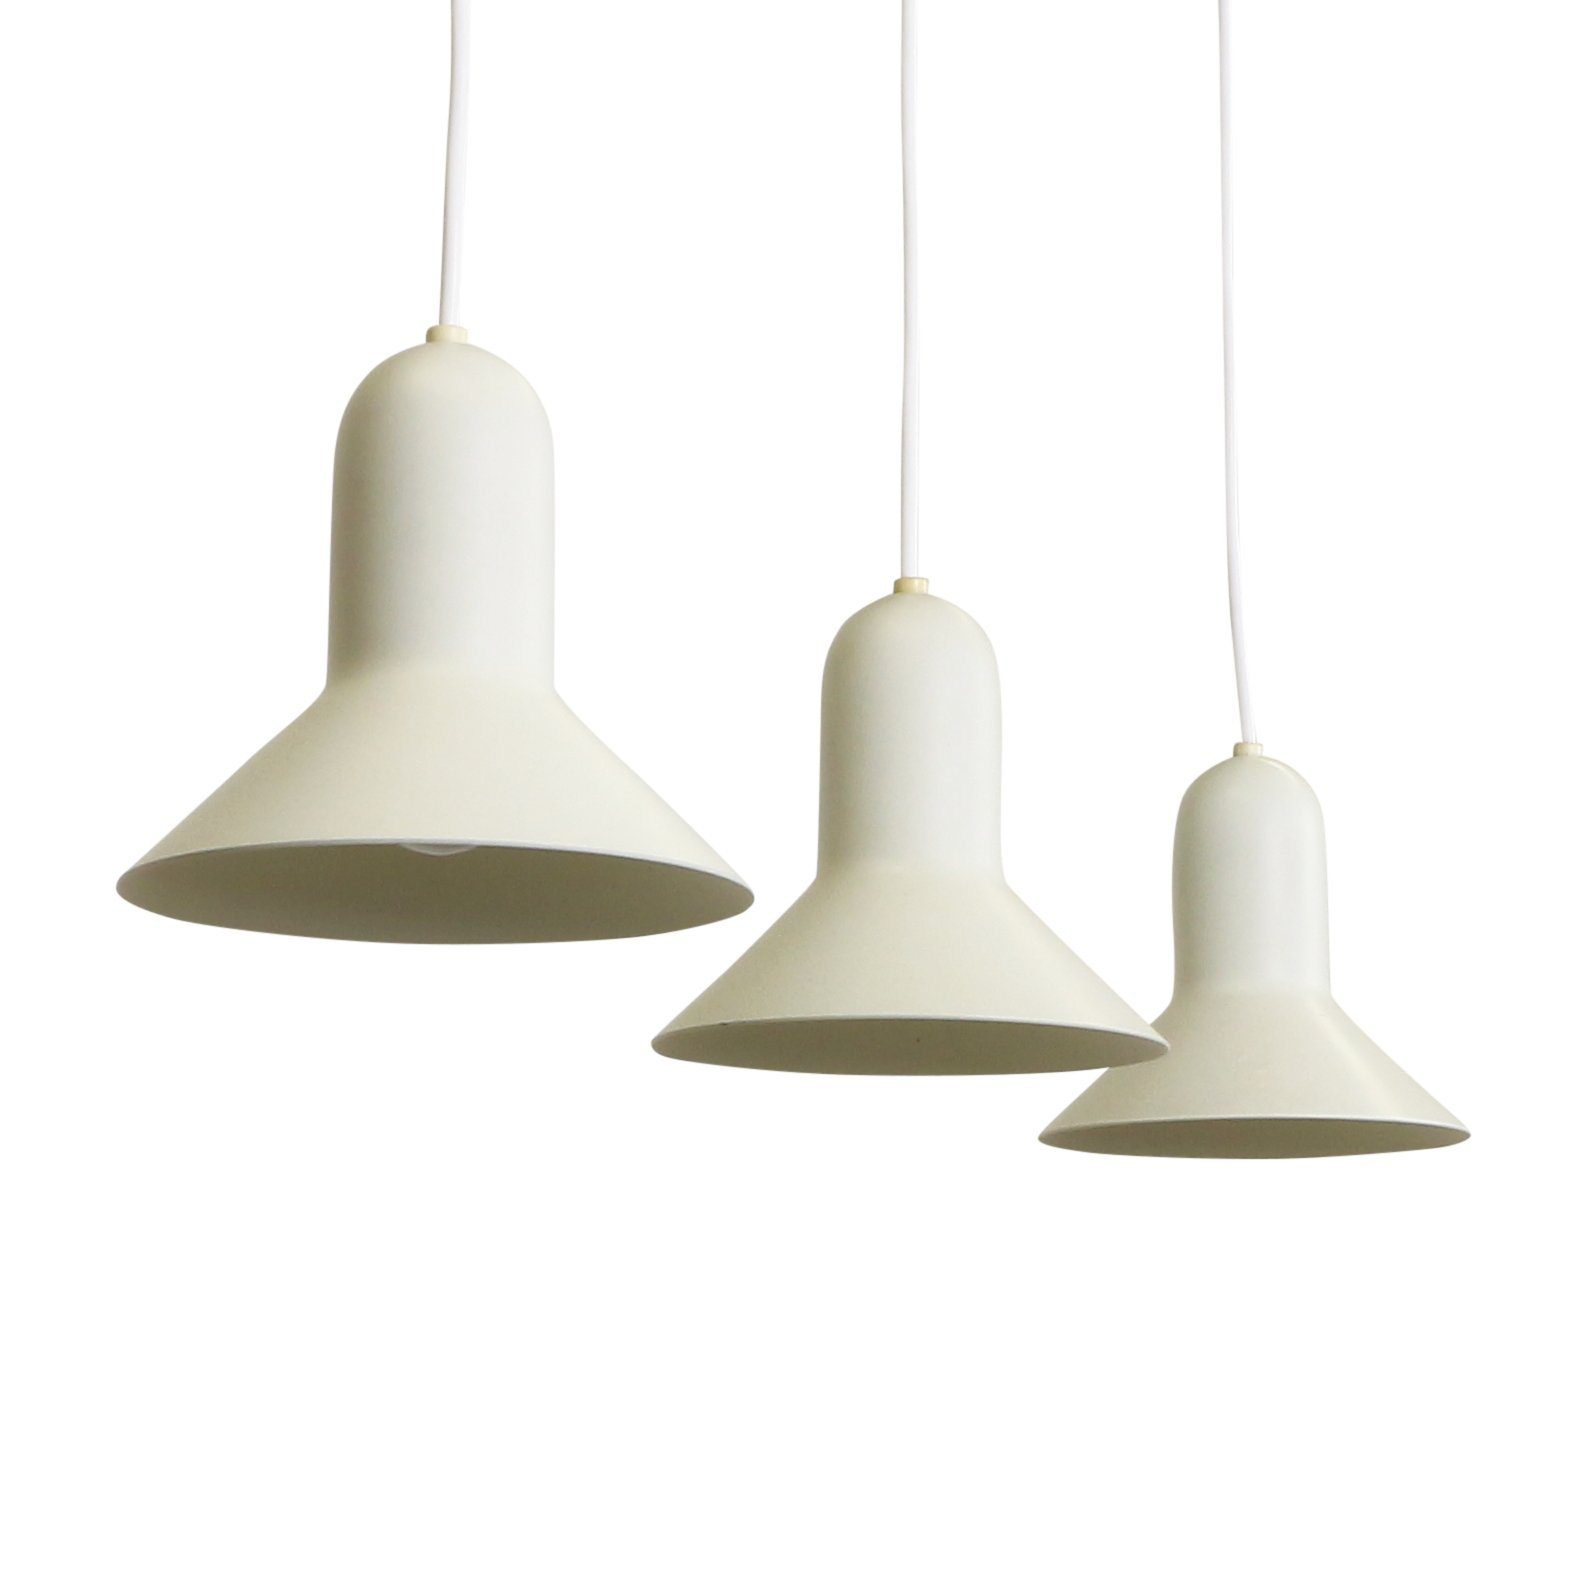 Set Of 3 Confetti Pendant Lights By Claus Bonderup For